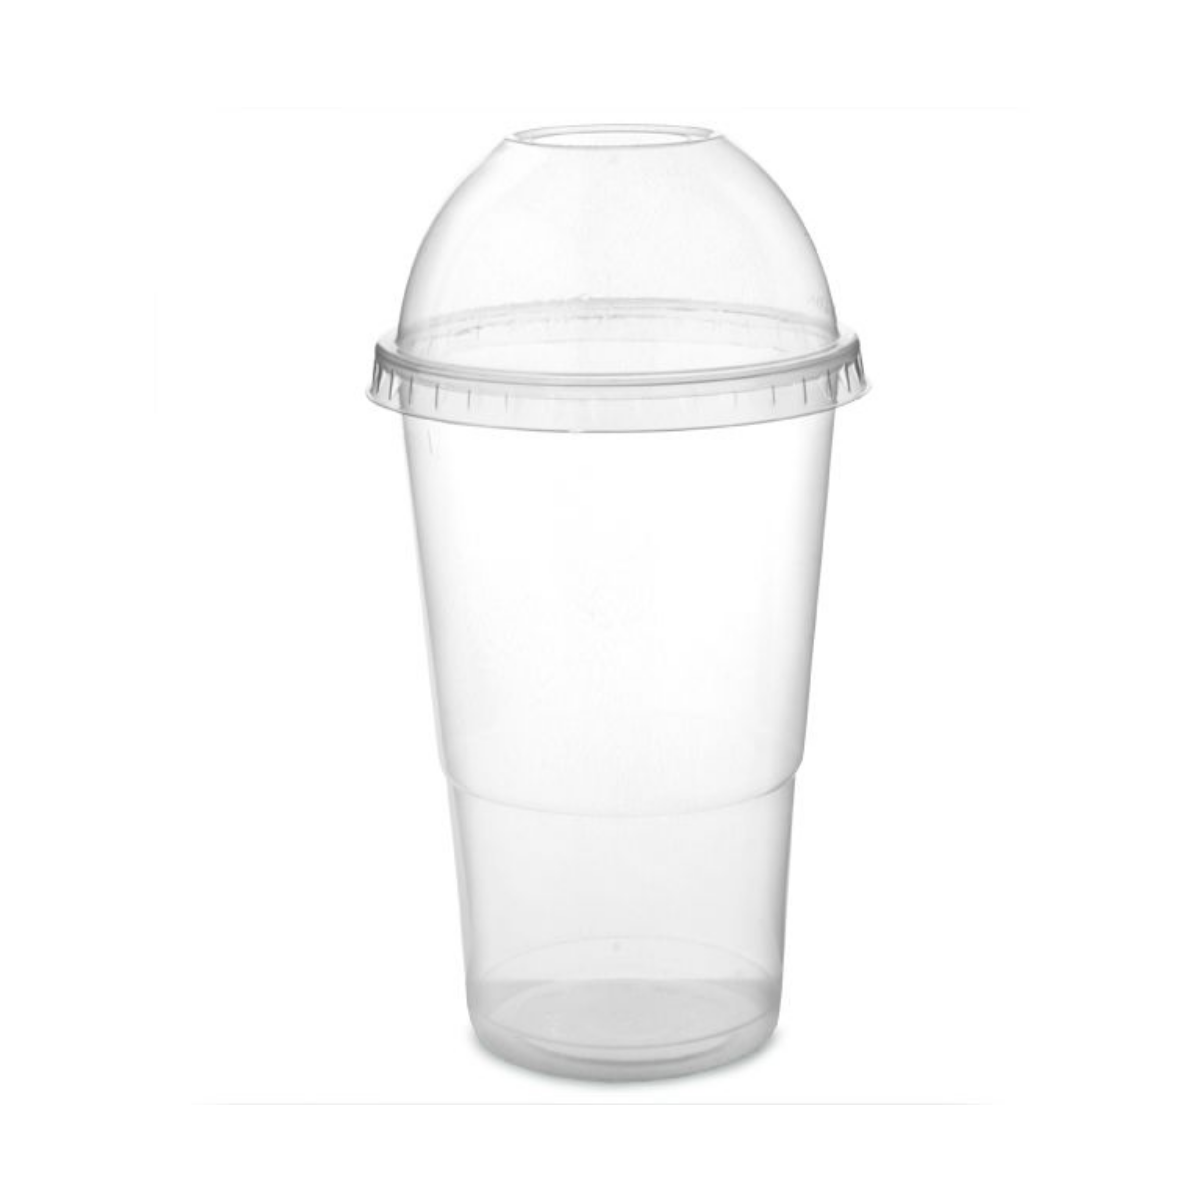 SMOOTHIE DRINKS SLUSHES DISPOSABLE CUPS WITH LIDS